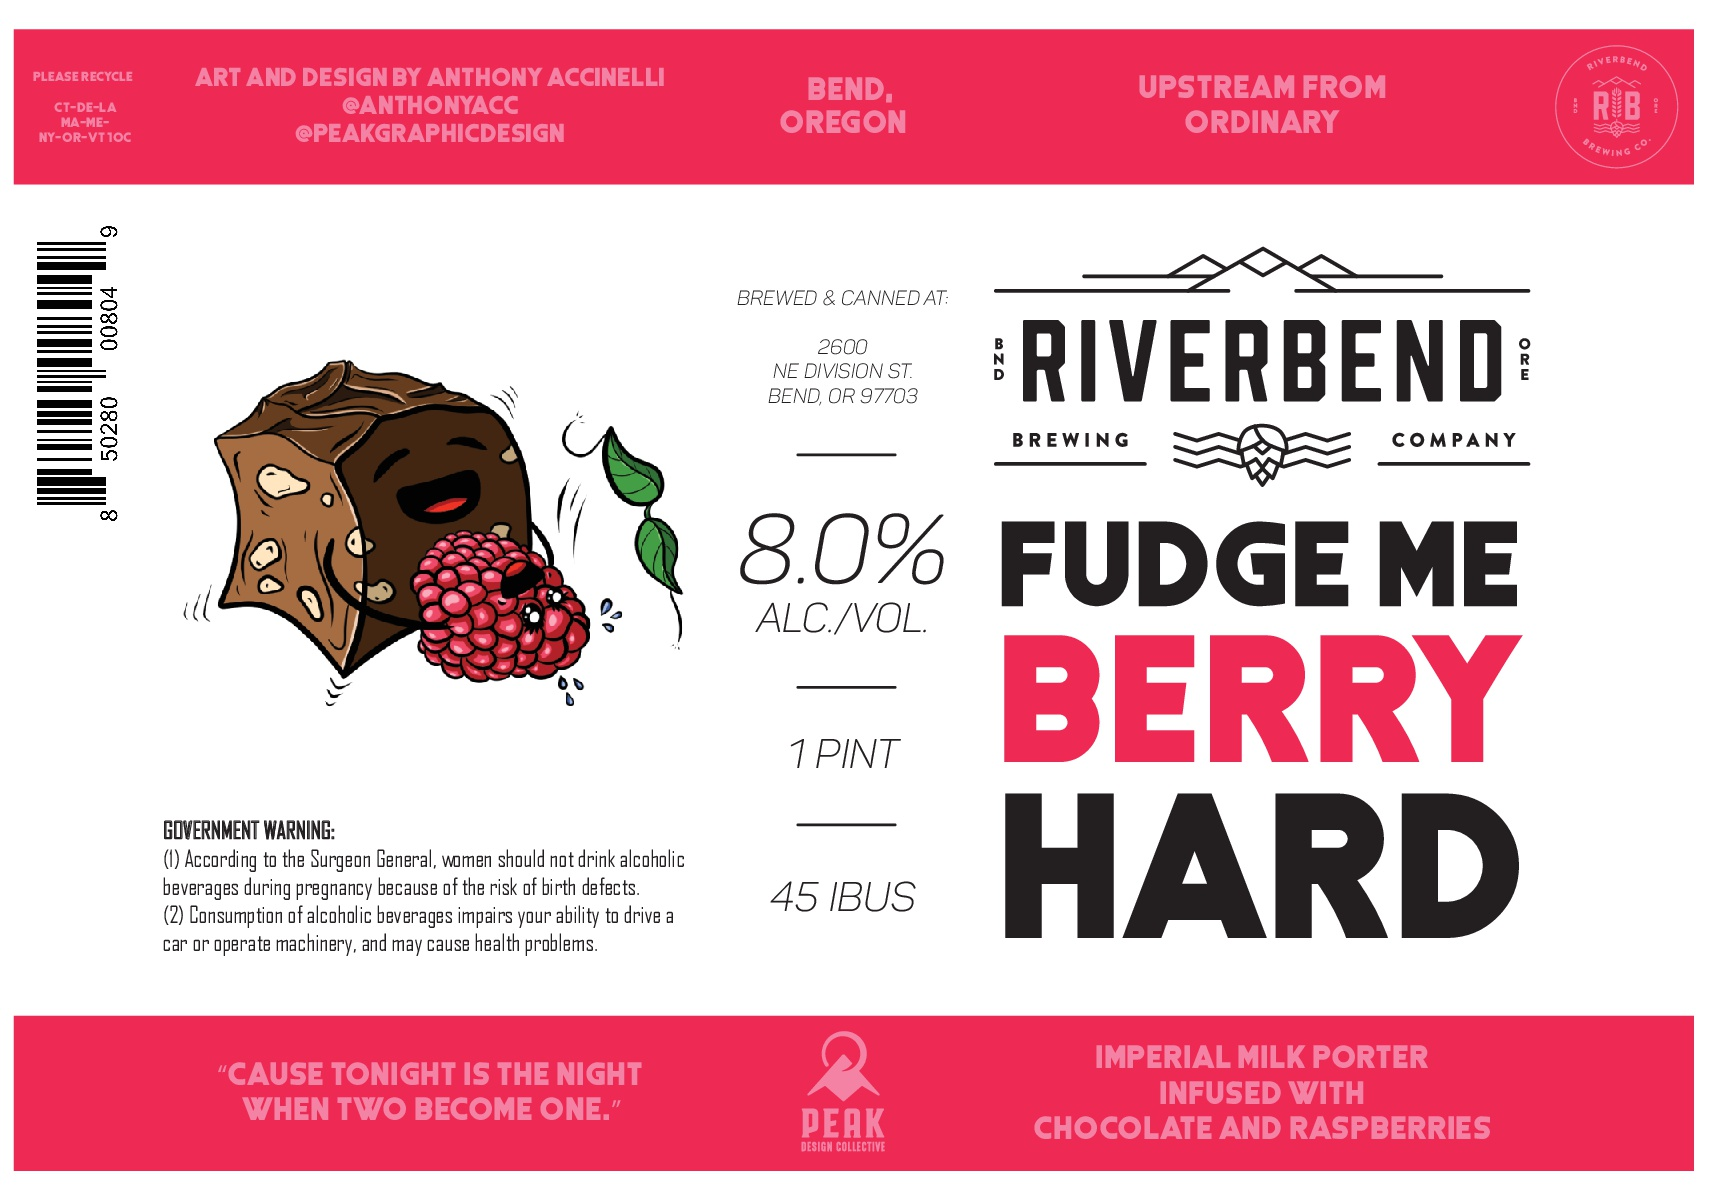 Riverbend Brewing Fudge Me Berry Hard